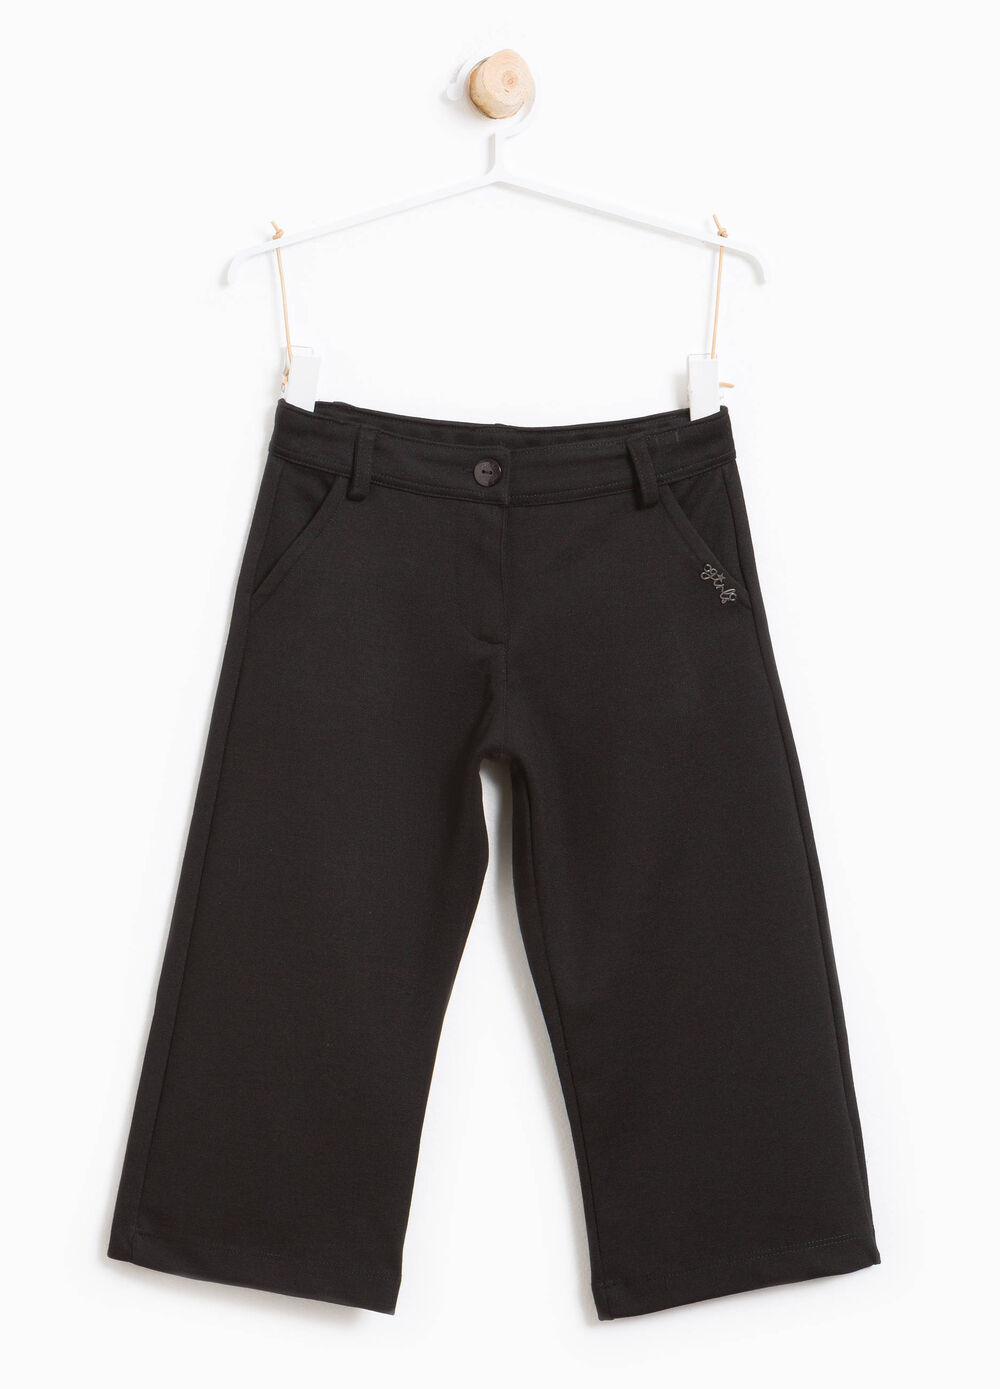 Dolid colour viscose crop trousers.